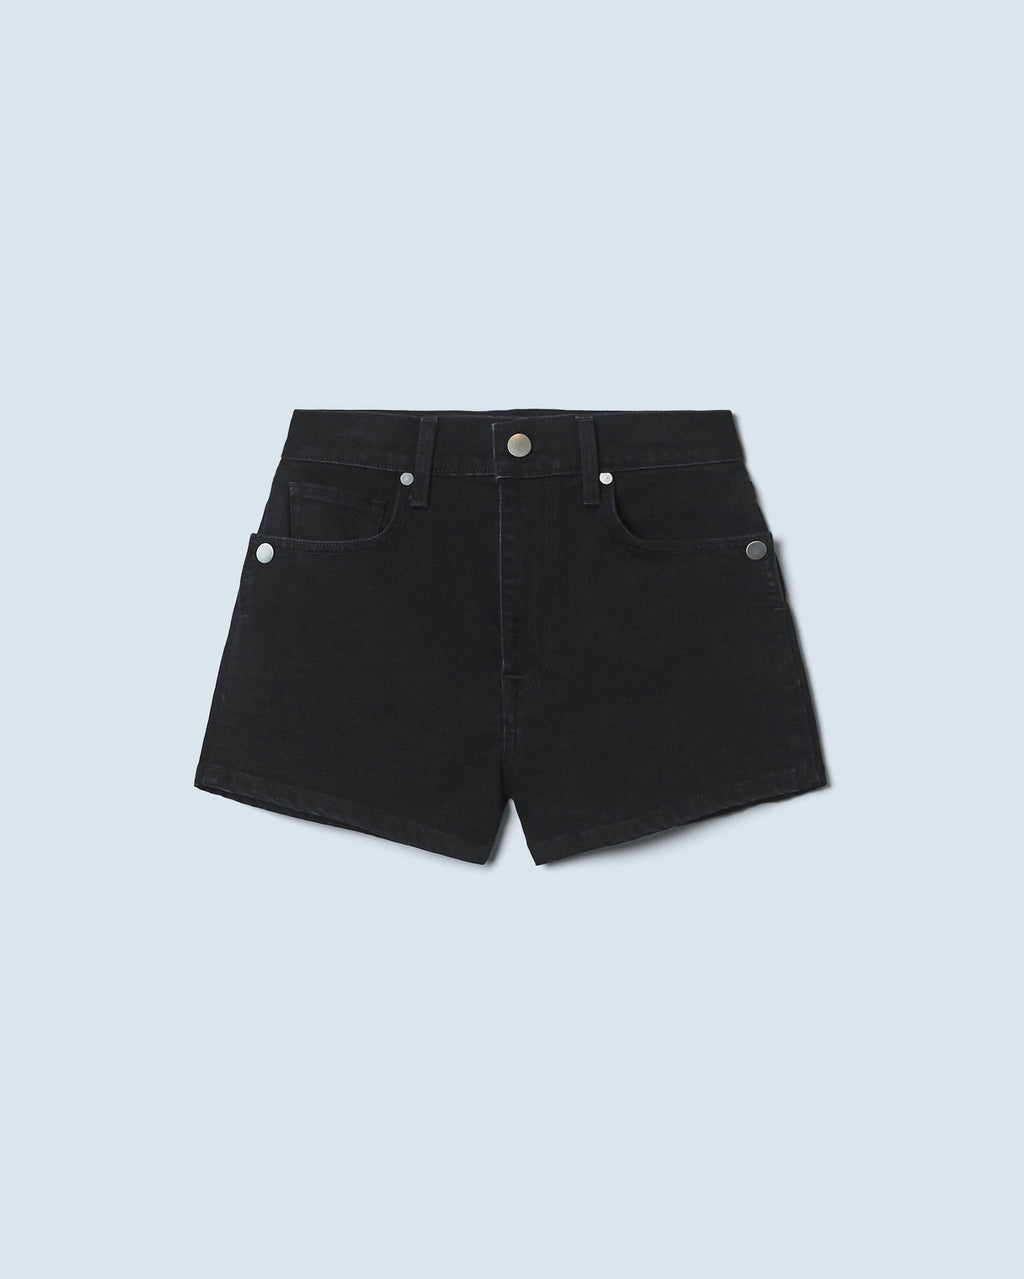 The Brie Short in Carbon Black